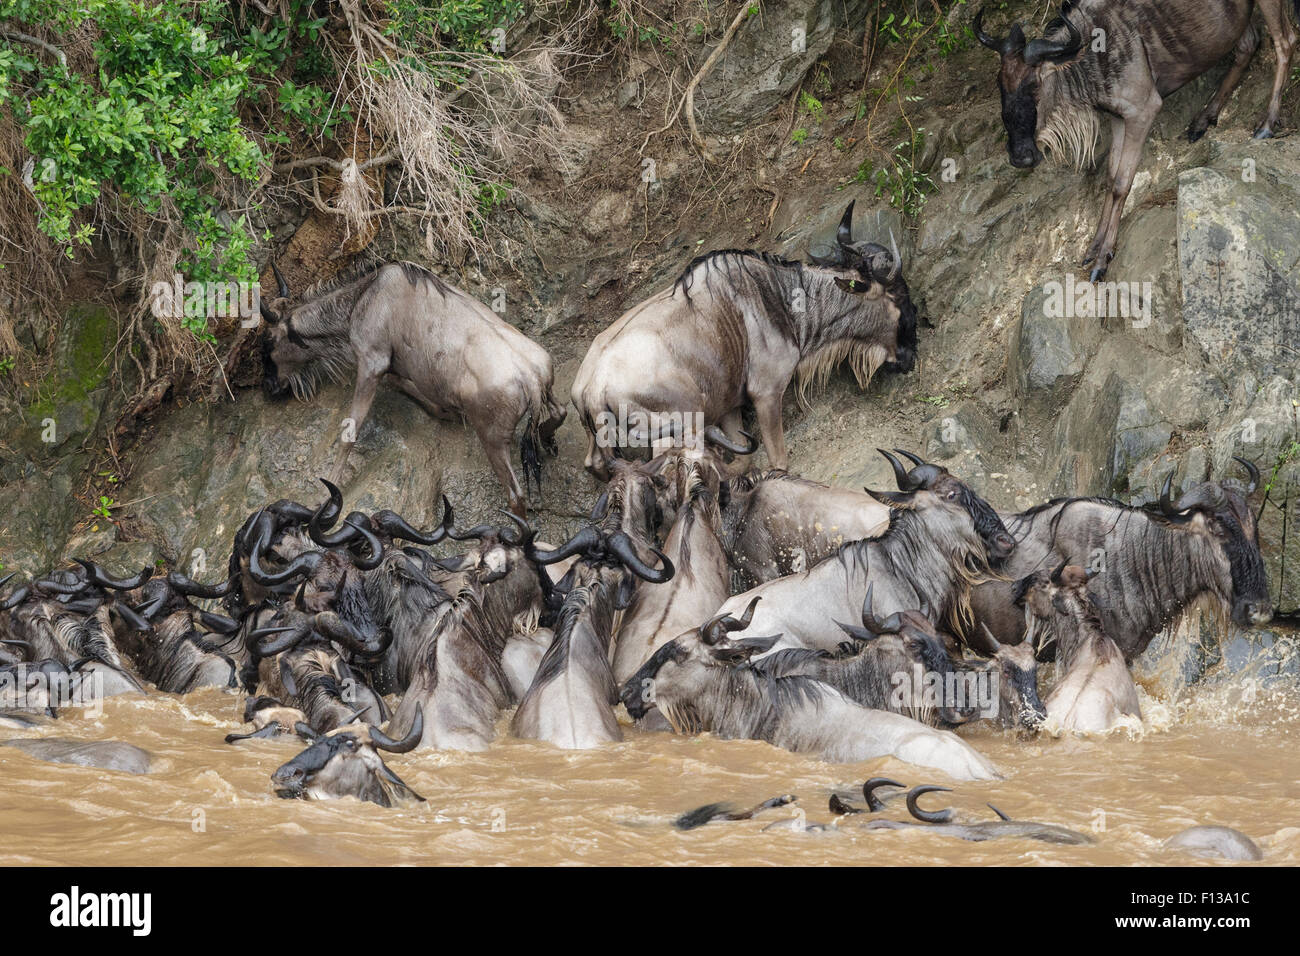 Wildebeest (Connochaetes taurinus) unable to climb steep bank after swimming across Mara river during migration, - Stock Image